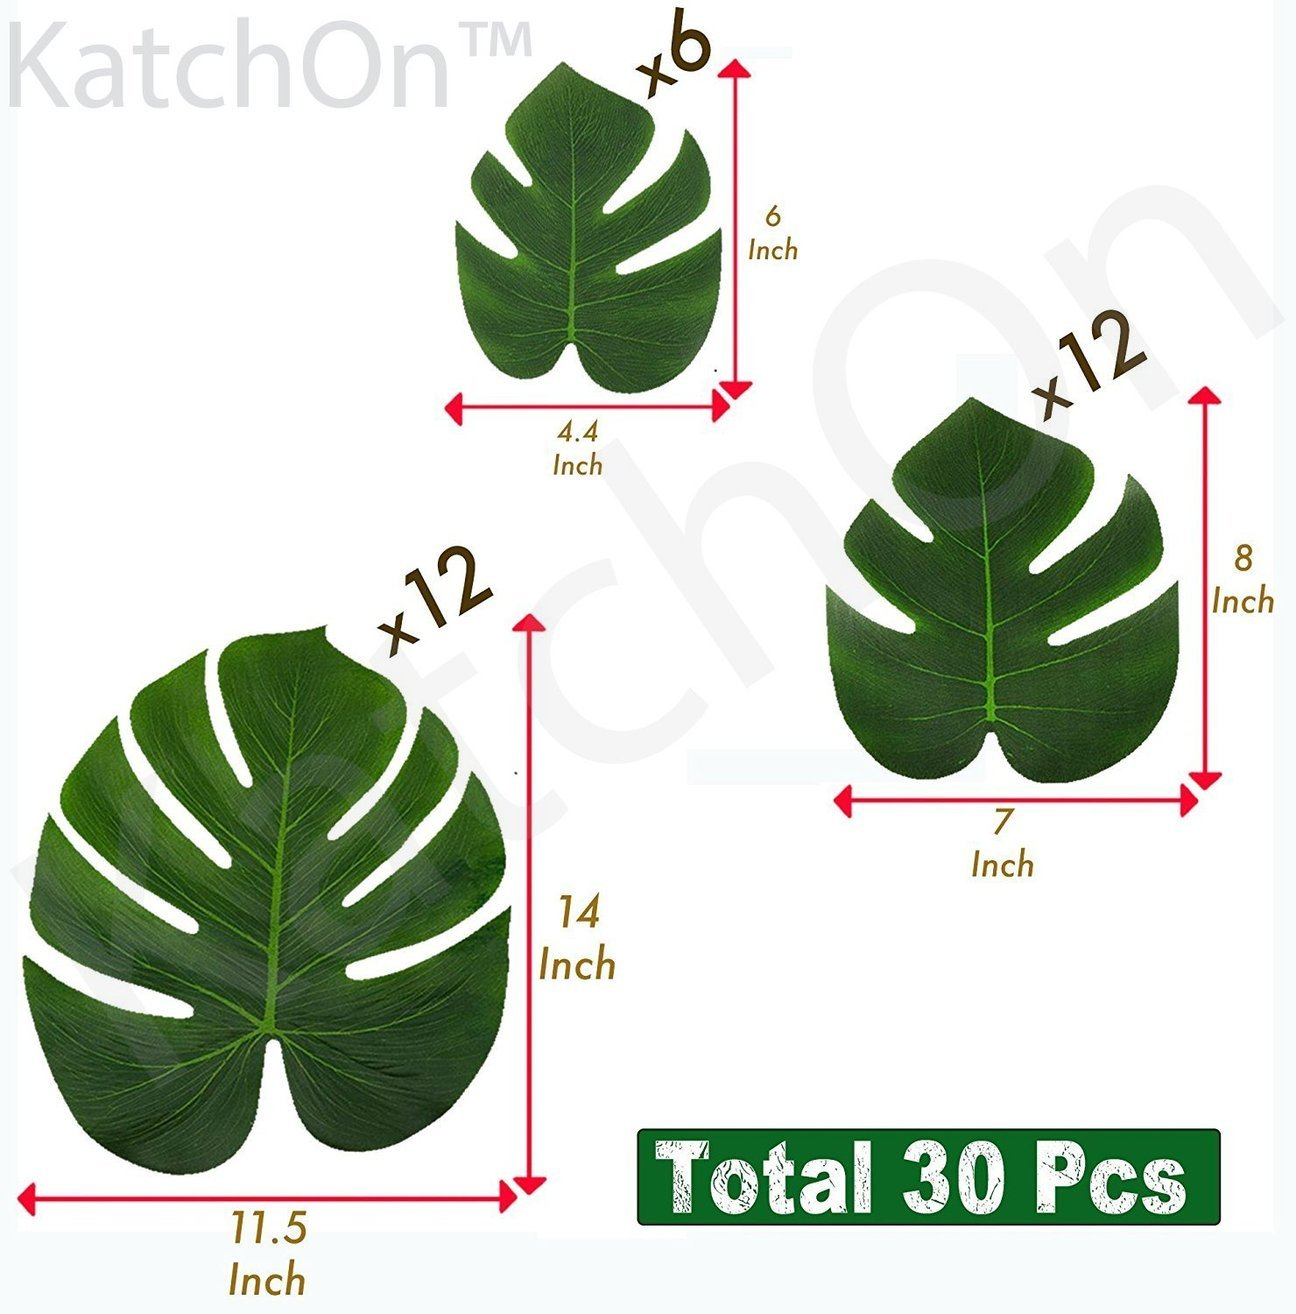 Real Looking Artificial Plant Leaves - Pack of 30 | Monstera Palm Leaves | Tropical Leaves Decorations | Palm Leaves Decorations | Luau Safari Party Supplies | Jungle-Beach-Birthday Theme | 3 Sizes - BEAUTIFUL REAL LOOKING DESIGN --- These beautiful real looking green plant leaves with comfortable silk touch will add fresh natural look to your greenery themed decorations and will make your guests feel like they're in paradise with these realistic polyester leaves EASY TO USE | REUSABLE --- Decorate your home and events with ease with this reusable leaves | Use as Table Decoration | Place it in Vase | Use as Party Favors | Stick Them on Walls | Scatter them all over Event to create a Beautiful Ambience | REUASE AFTER EVENT | Home Living room Deocarions | Dining Table Deocarations | Bedroom Decor | Art Gallery and so much more fun BUY RISK FREE |100% MONEY BACK GUARANTEE If you are not completely satisfied with your purchase from KatchOn Store - living-room-decor, living-room, home-decor - 71qAmrdarhL -